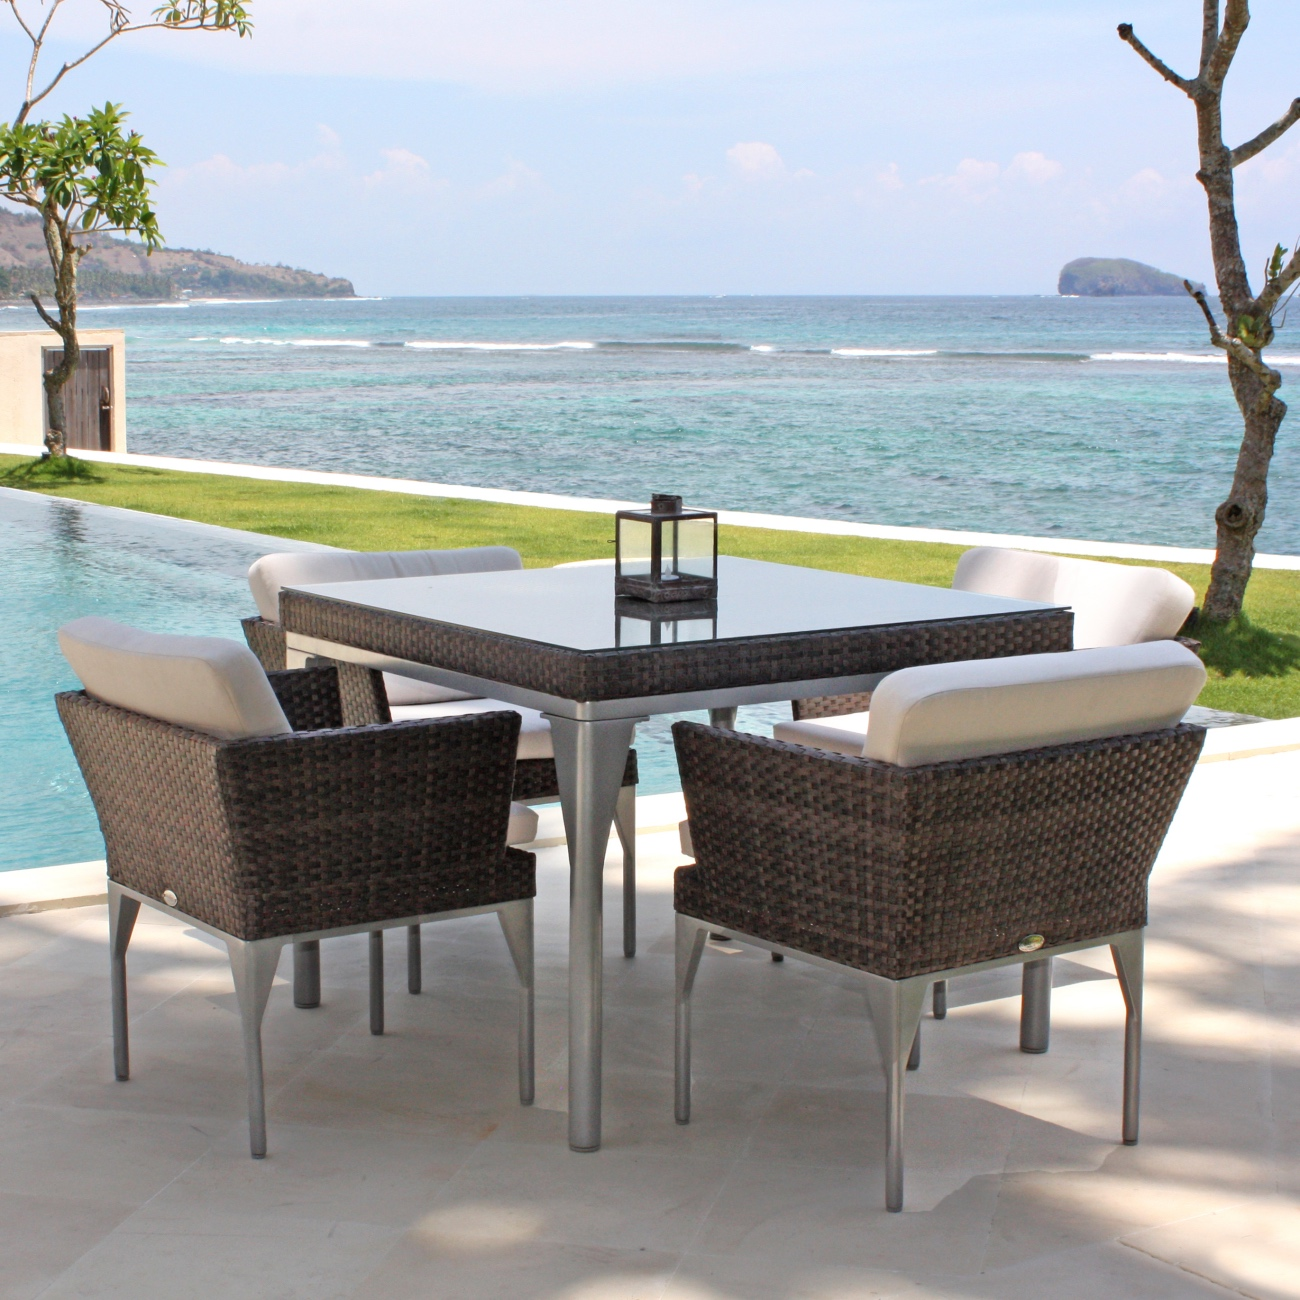 square dining table for 4. Home / All Weather Rattan Dining Tables Skyline Brafta Square Table \u2013 Seats 4 For